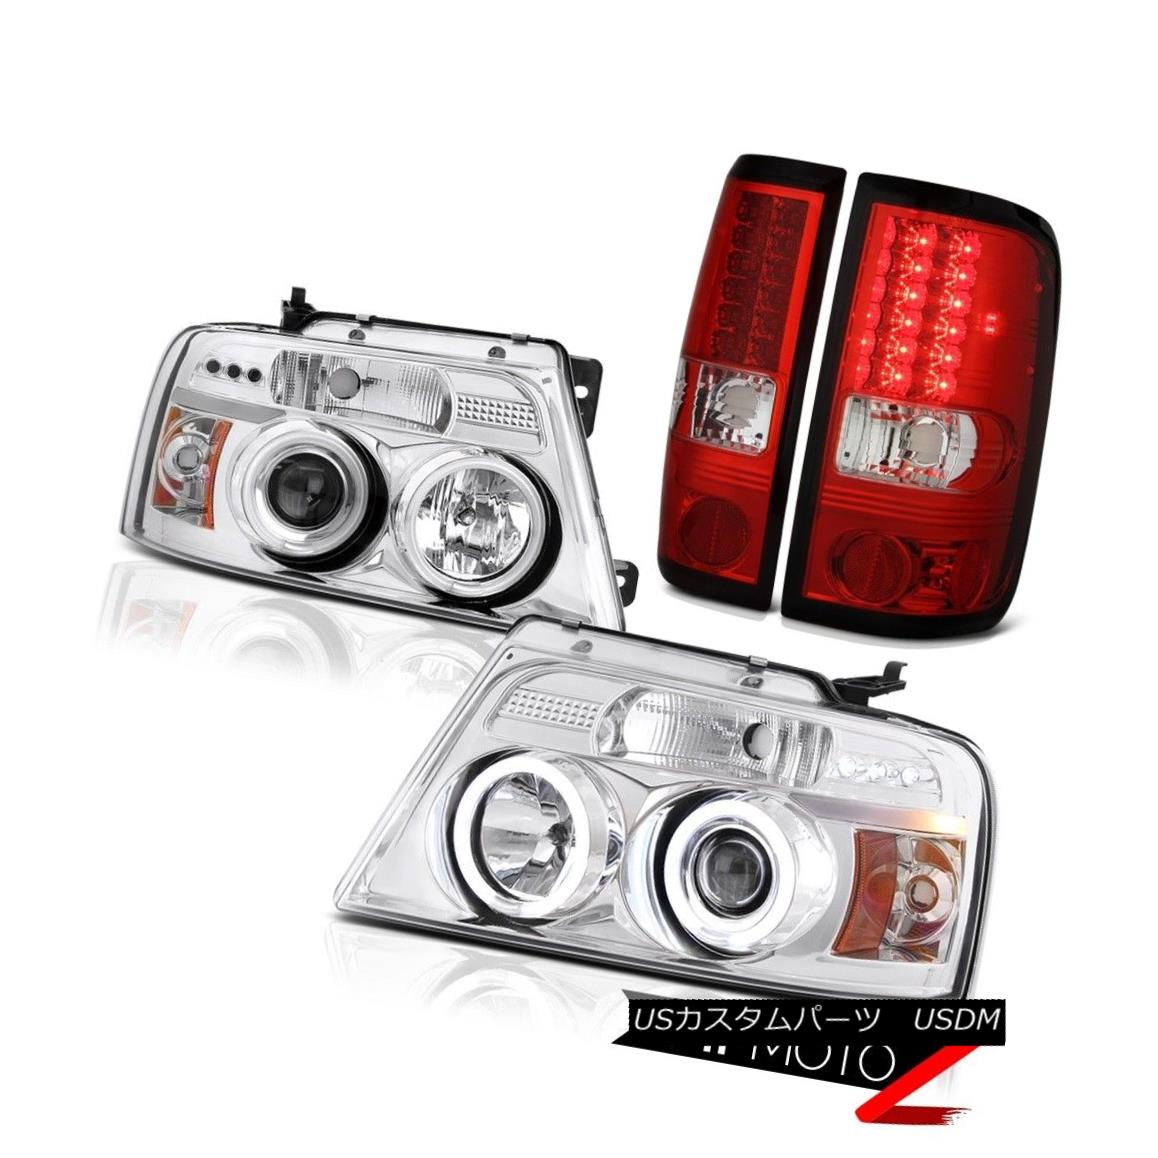 テールライト PICKUP F150 2004-2008 Chrome DEVIL EYE Projector Headlight CCFL LED Taillights PICKUP F150 2004-2008 Chrome Devil EYEプロジェクターヘッドライトCCFL LED曇り